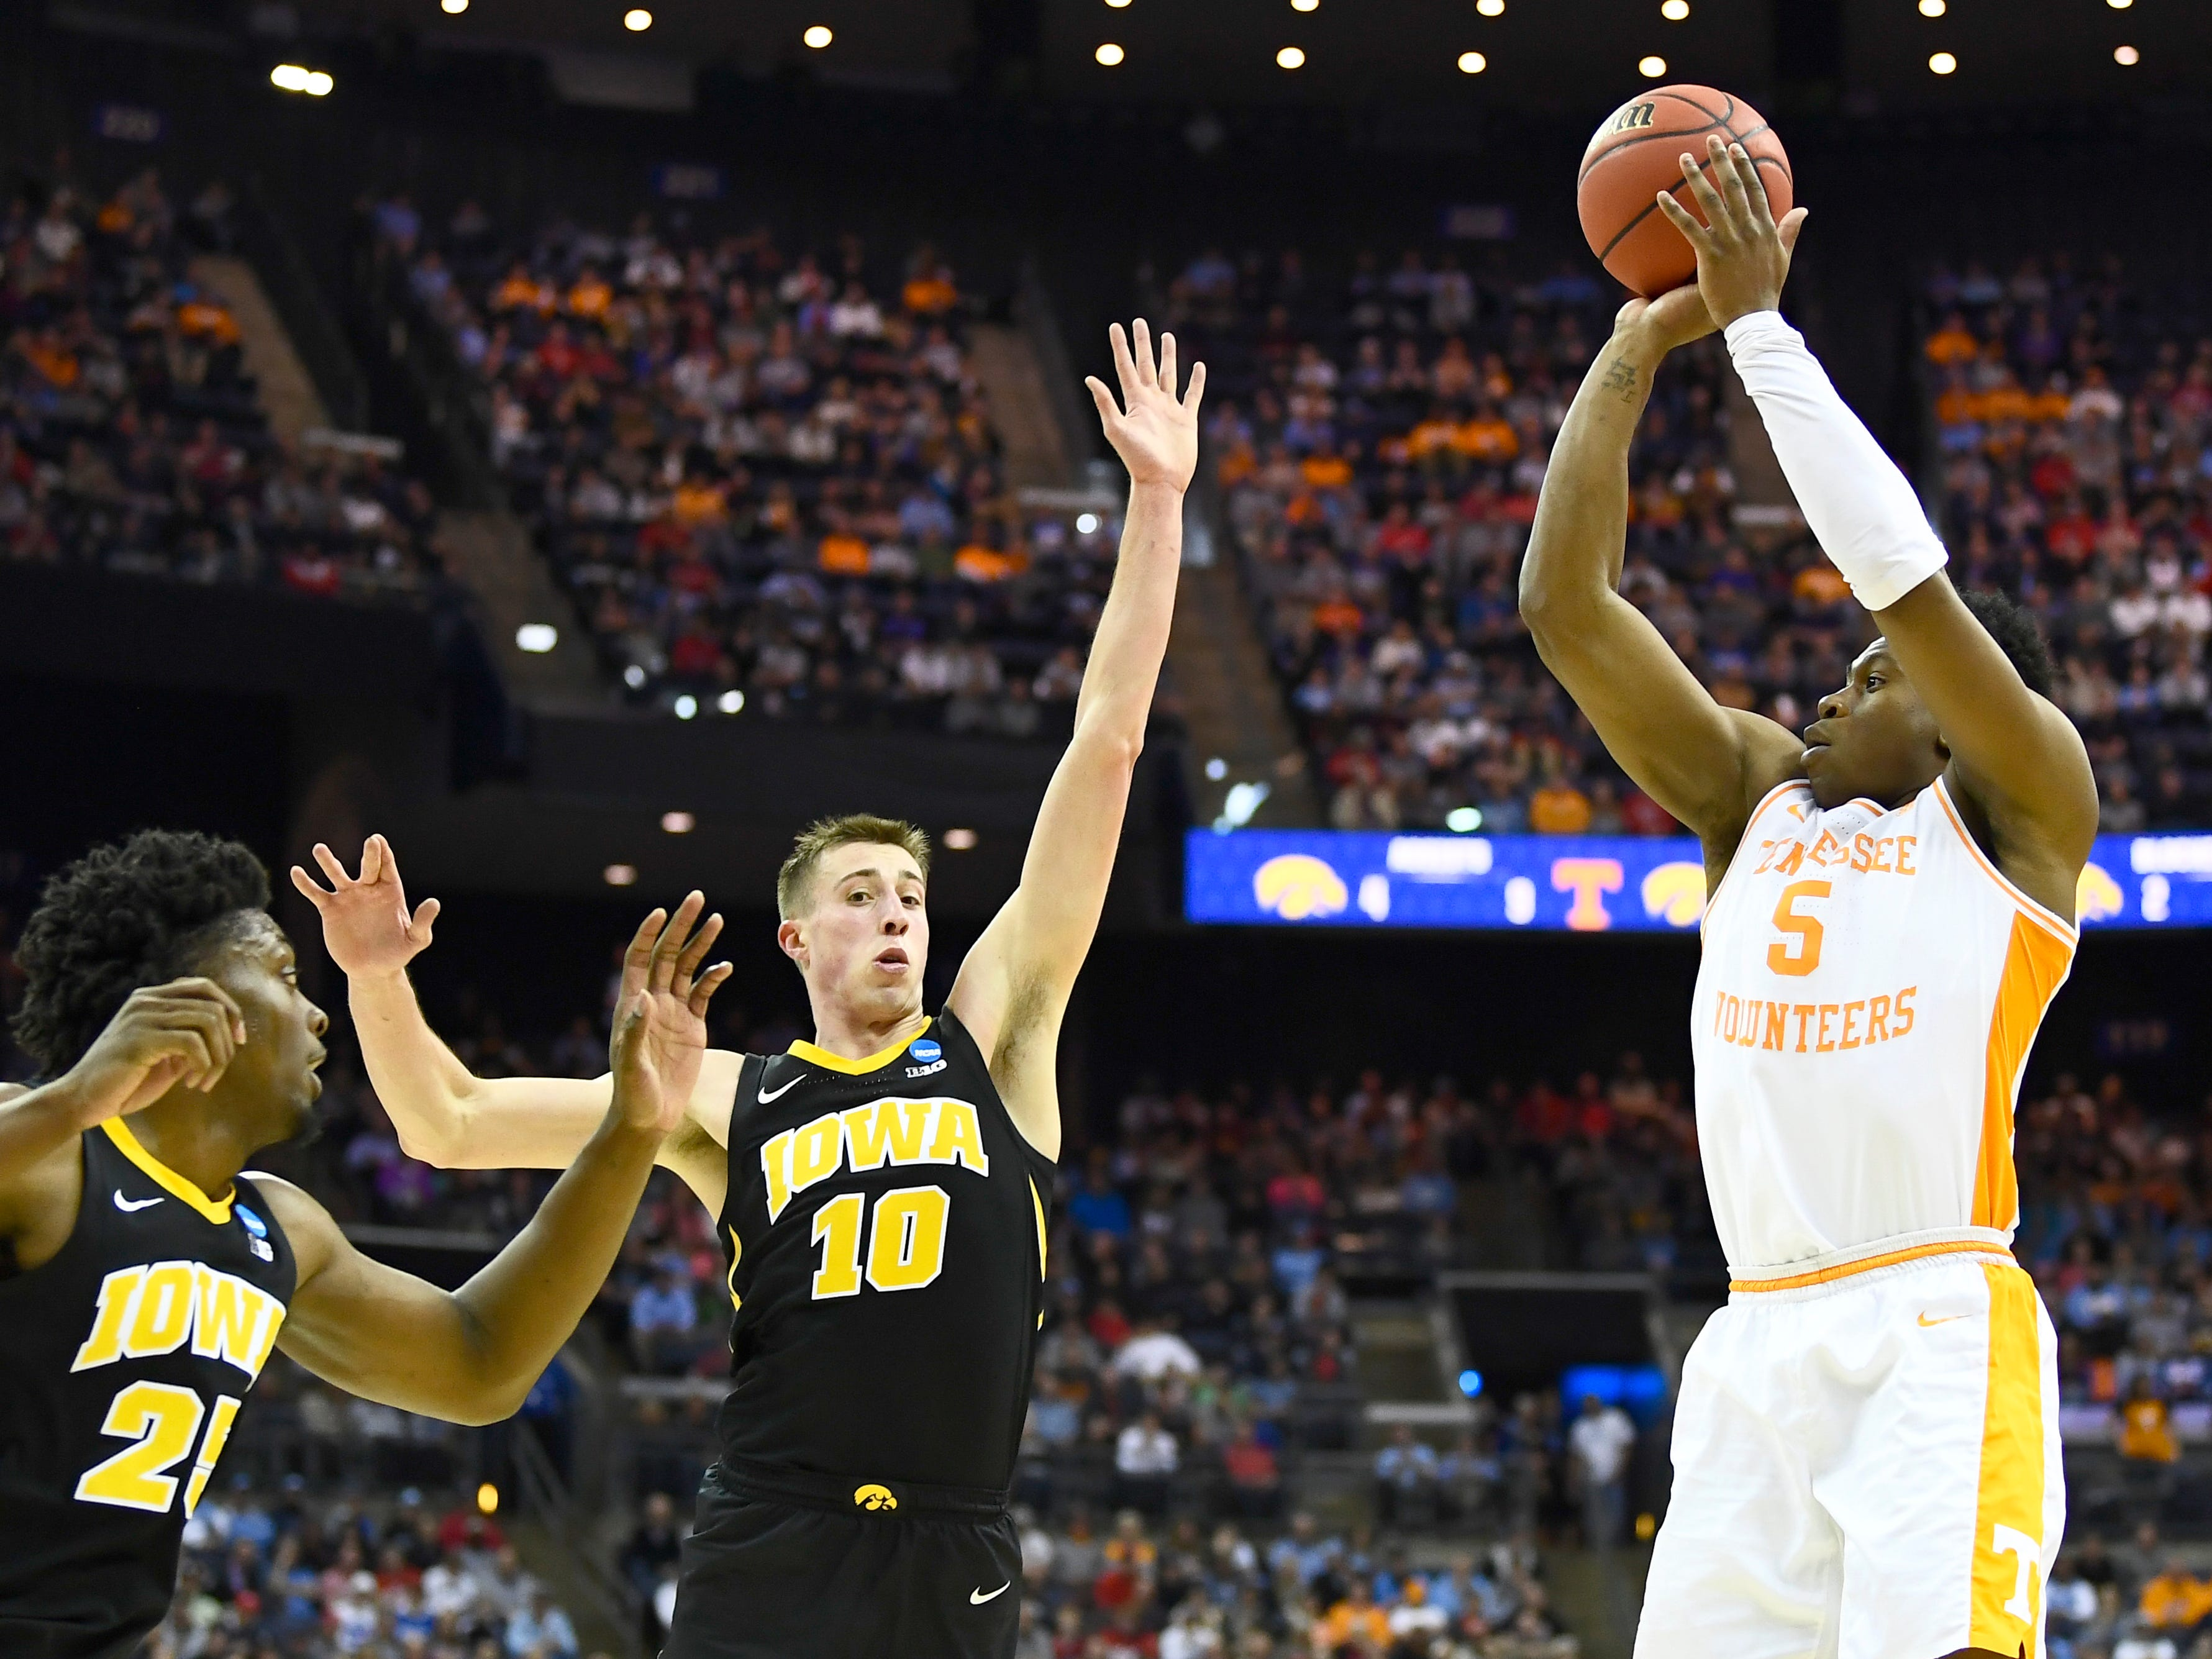 Tennessee guard Admiral Schofield (5) attempts a three-pointer over Iowa forward Tyler Cook (25) and Iowa guard Joe Wieskamp (10) during the second half in the second-round game of the NCAA Tournament at Nationwide Arena in Columbus, Ohio, Sunday, March 24, 2019.